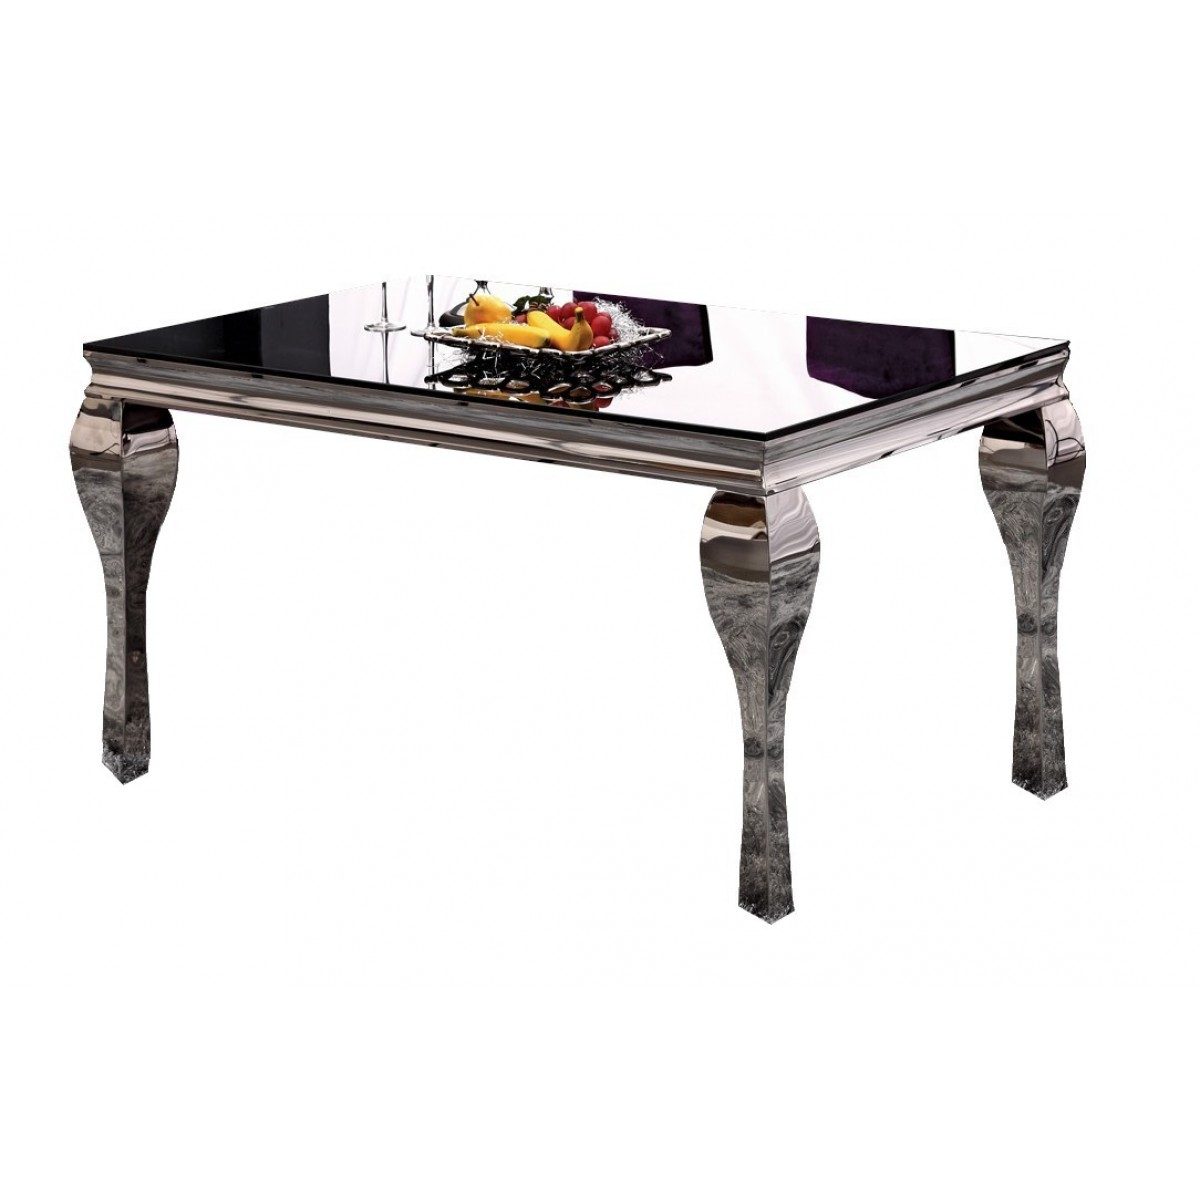 148 dimension table salle a manger dimension table salle - Table a manger dimension ...